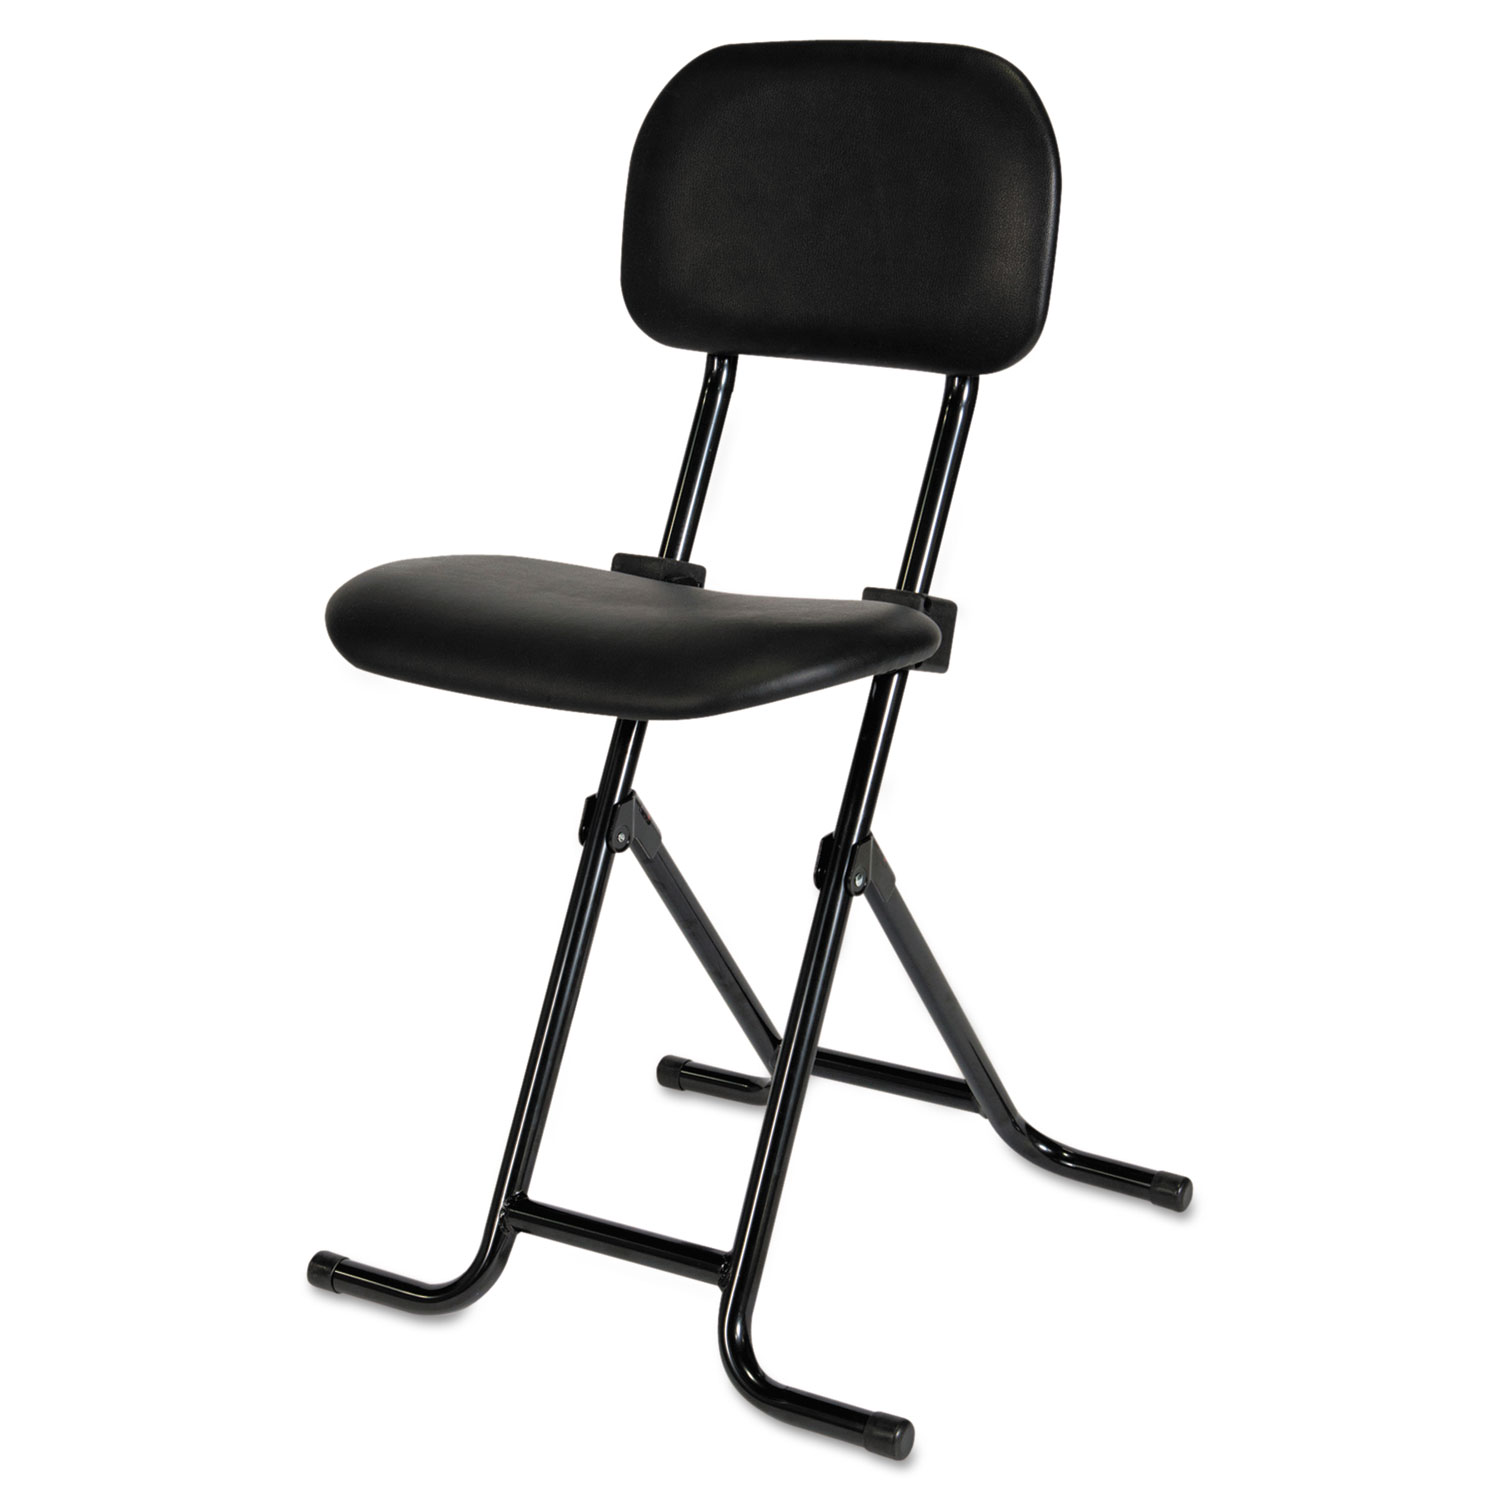 IL Series Height Adjustable Folding Stool By Alera Plus AAPCS612 OnTimeSup